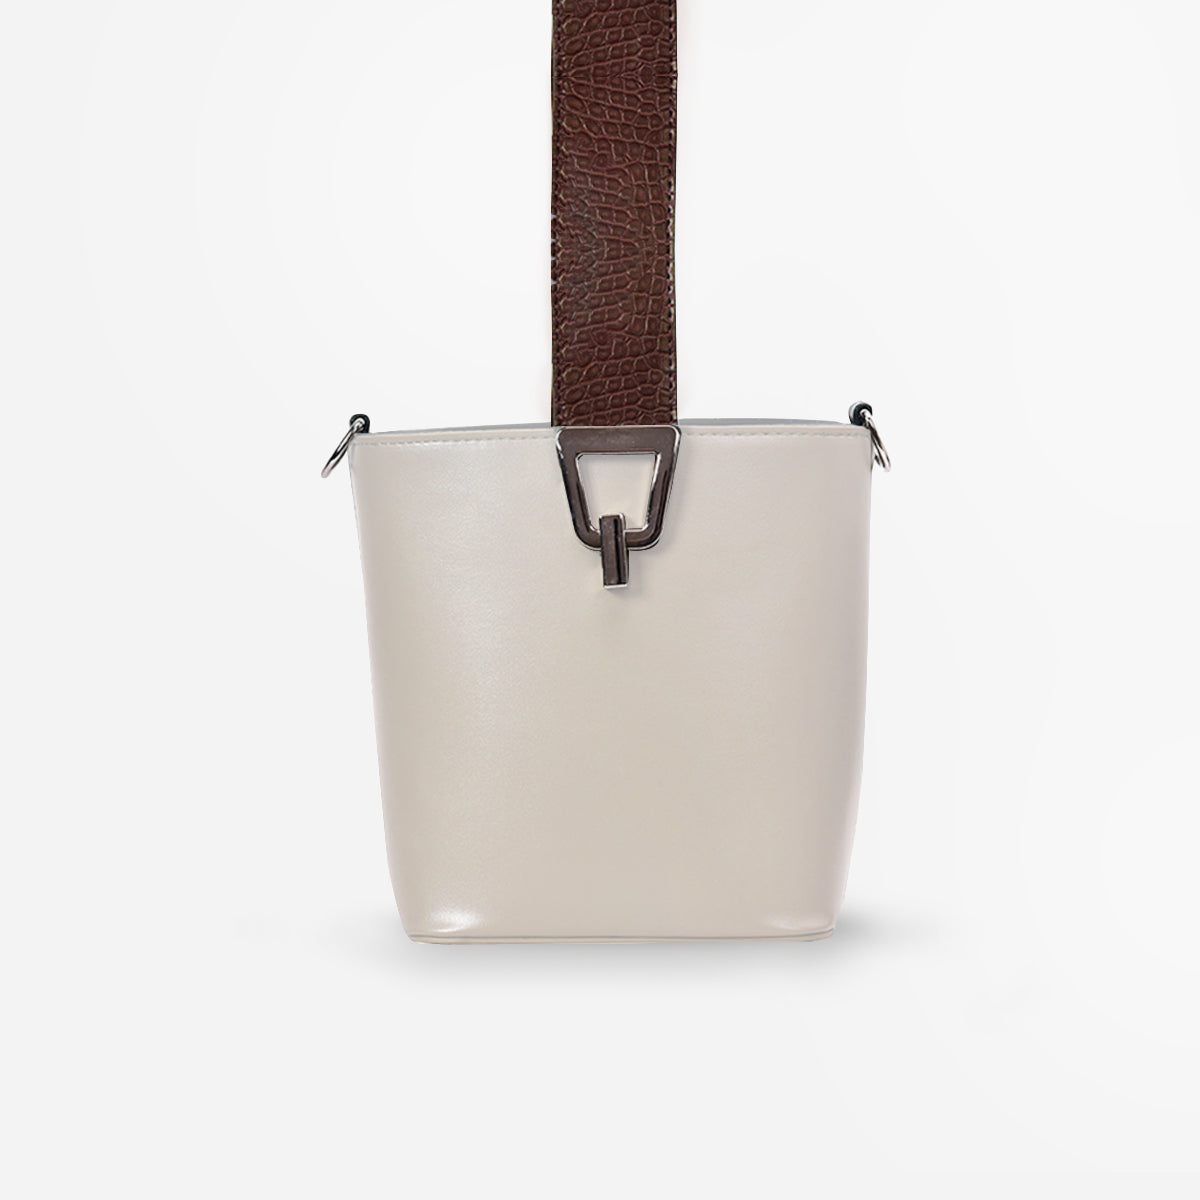 Felicia Small Crossbody Bag - beige